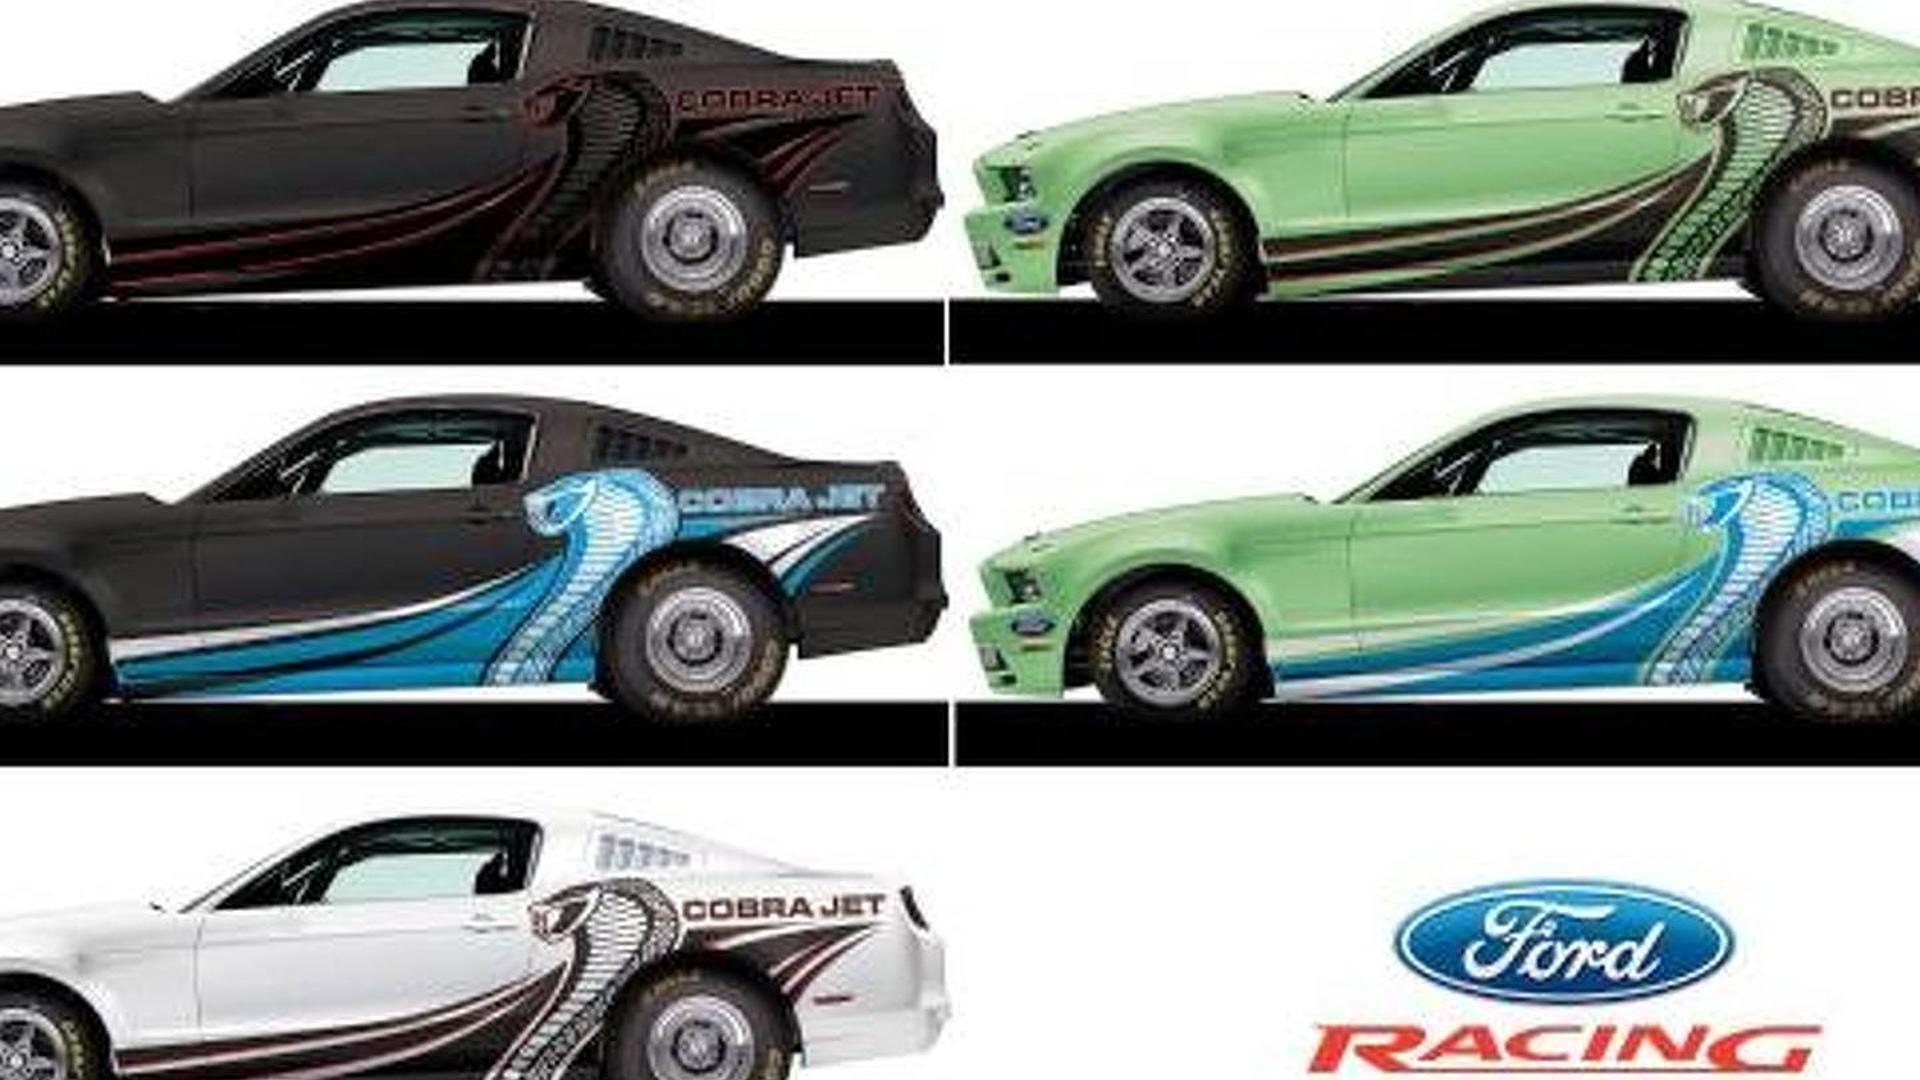 2014 Ford Cobra Jet Mustang introduced